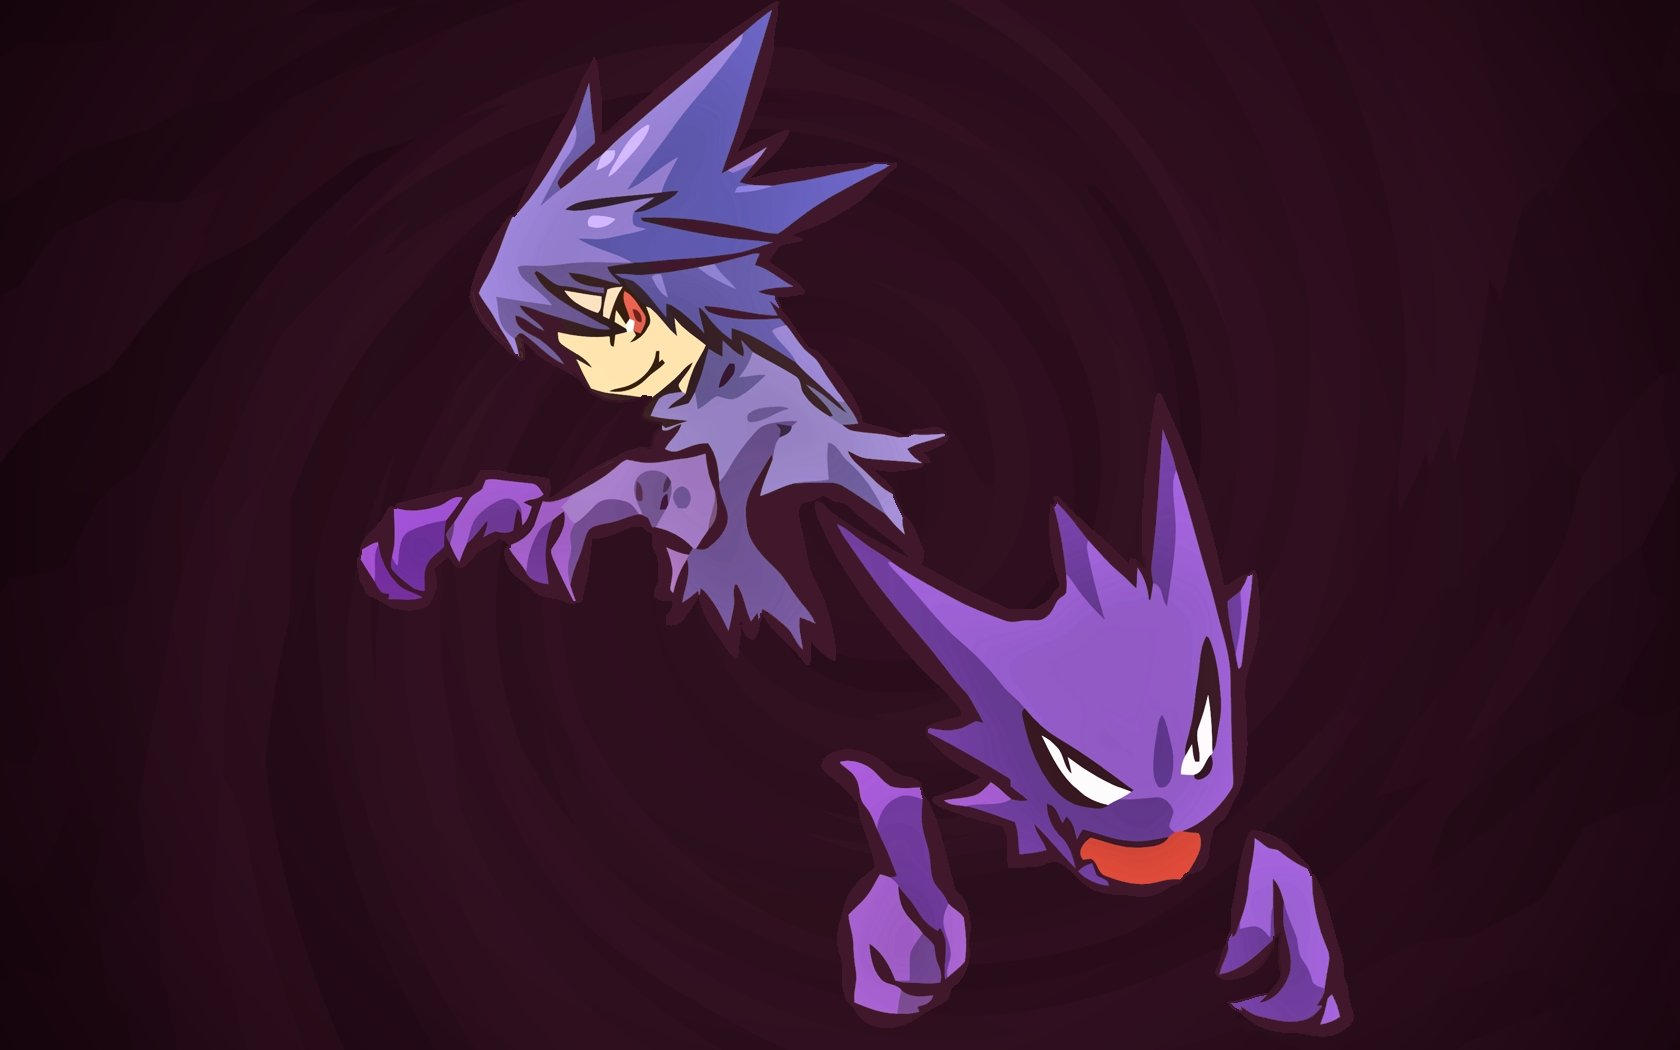 Download hd 1680x1050 Haunter (Pokemon) PC background ID:280449 for free